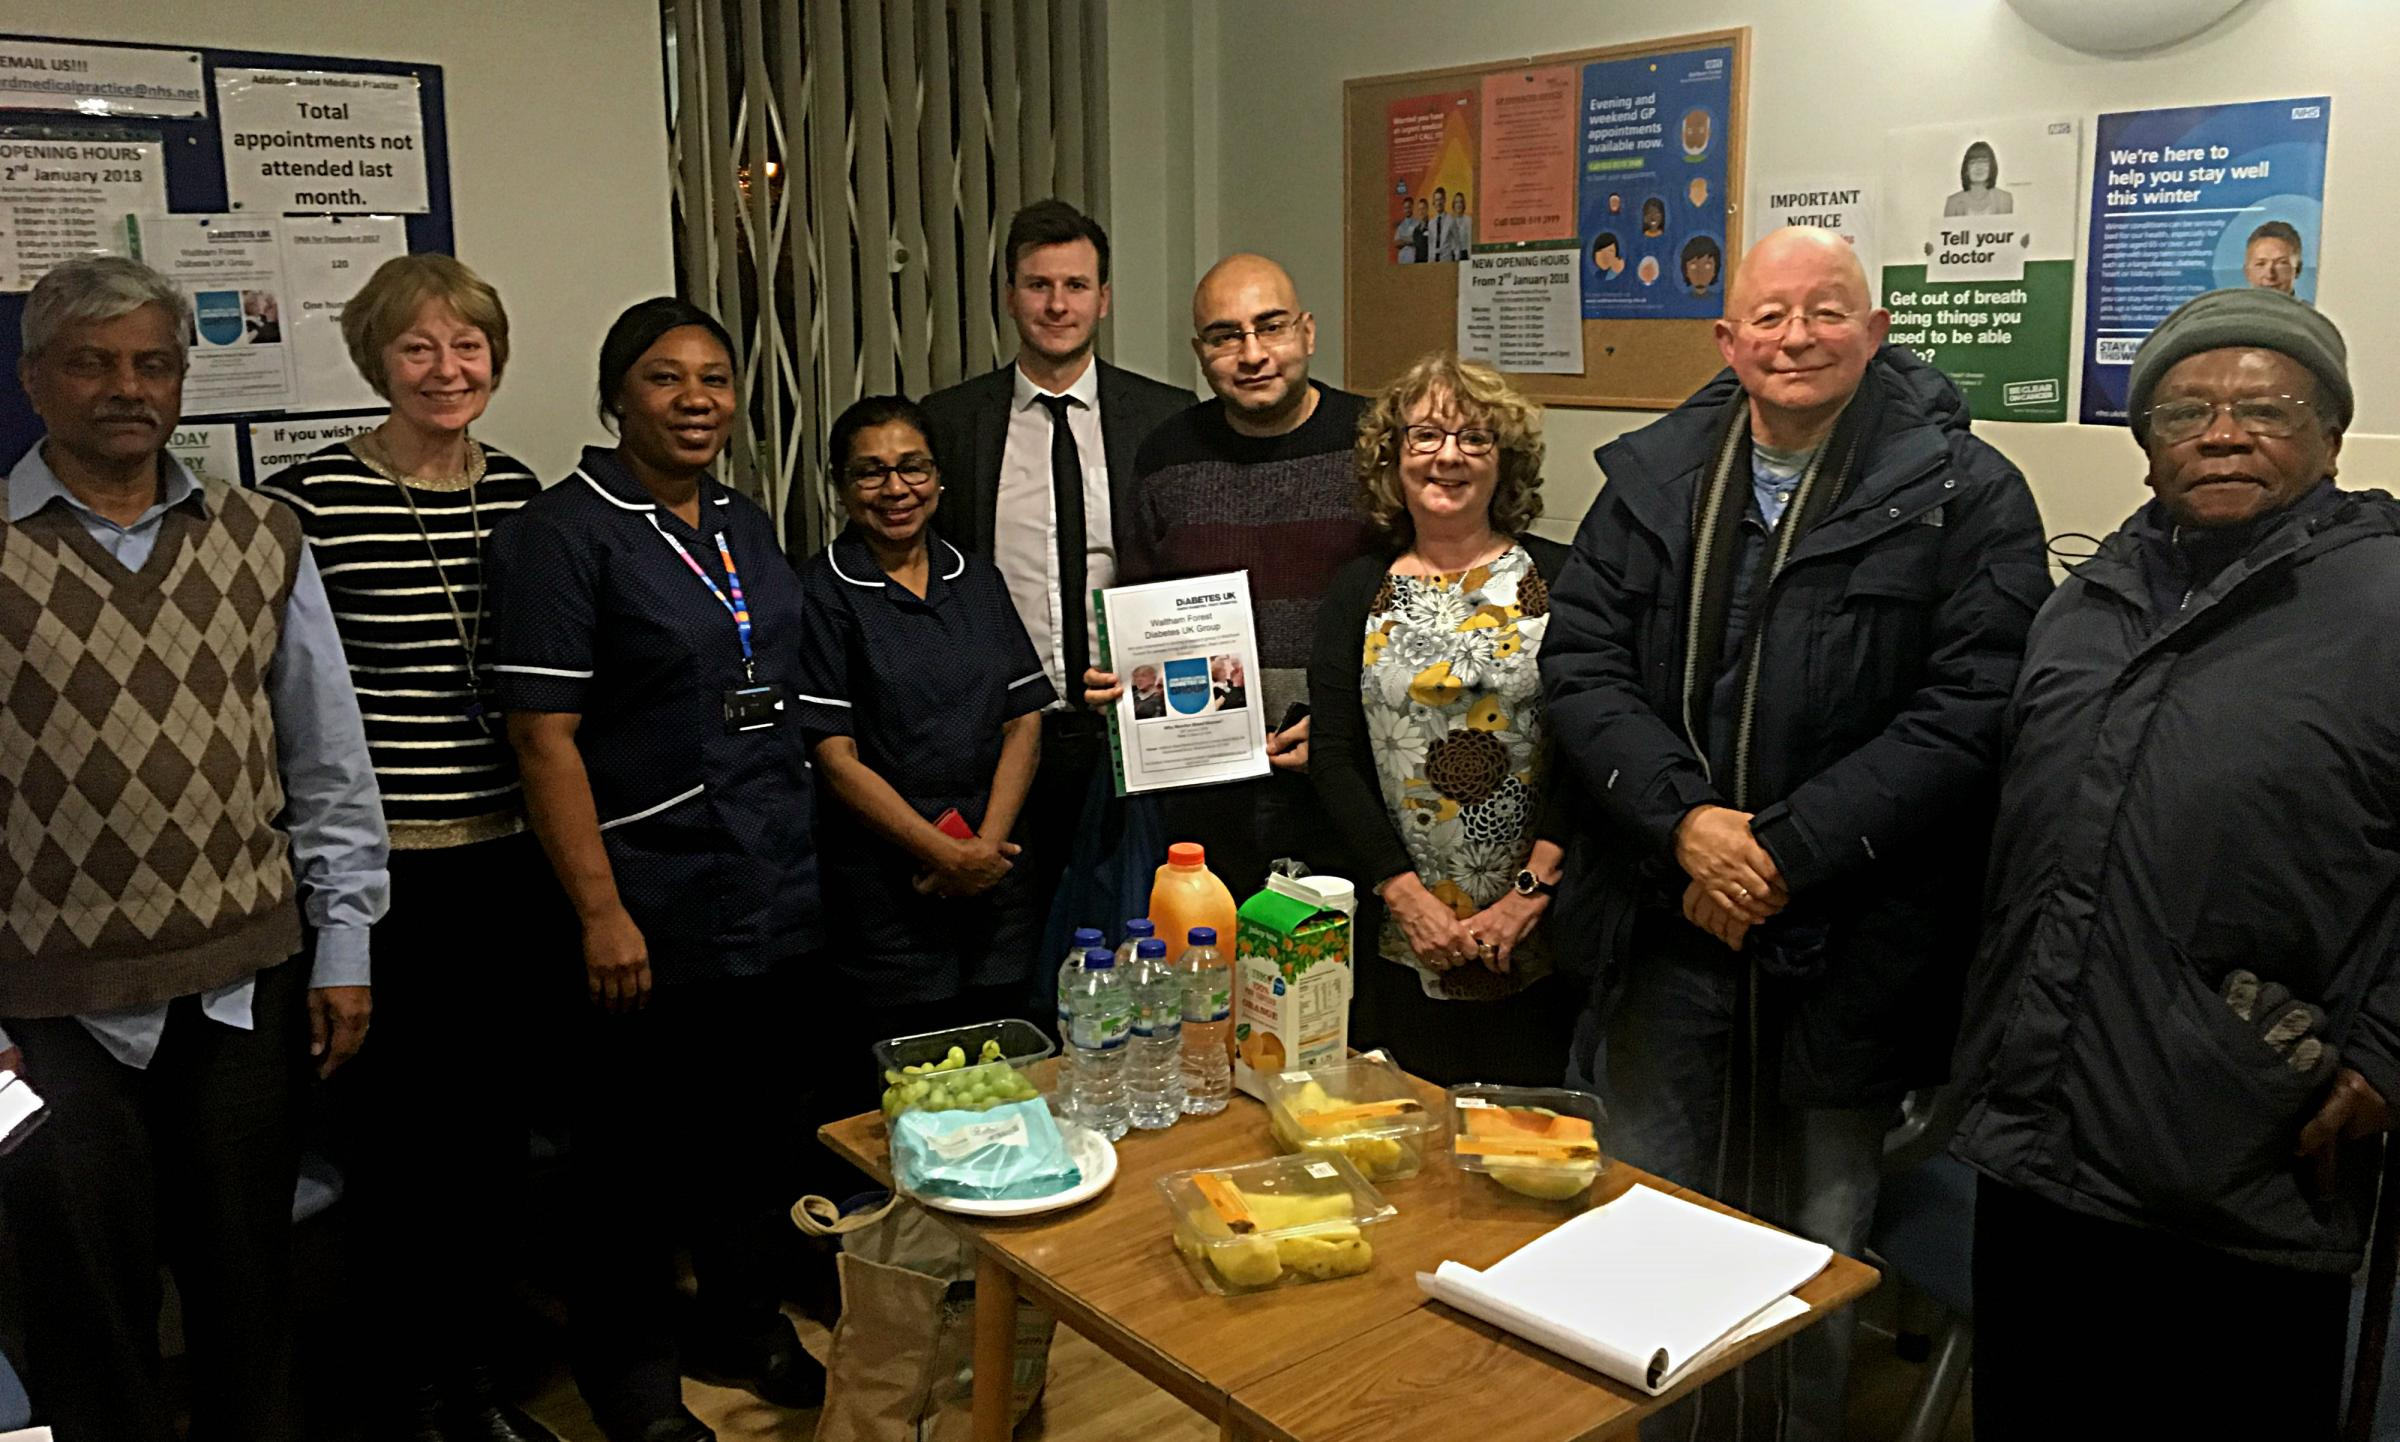 The new Diabetes UK Waltham Forest group held its first meeting last week